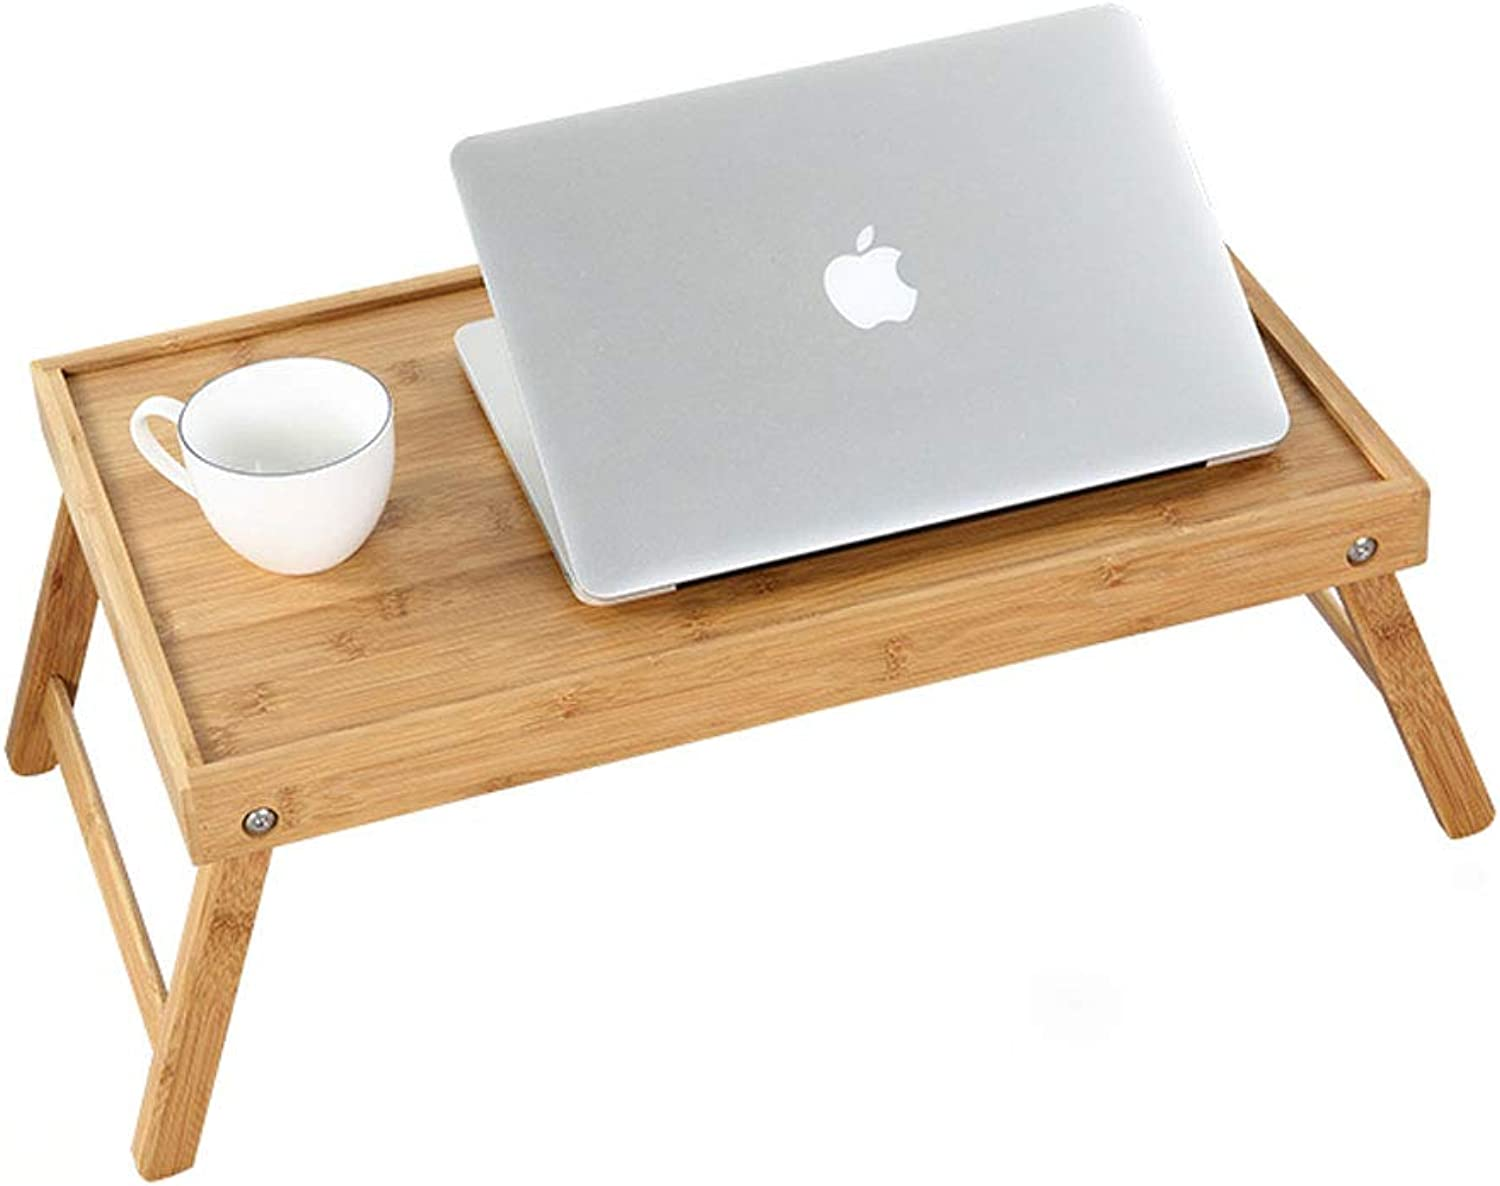 NJ Folding Table- Household Simple Bamboo Folding Computer Desk, Home Dining Table Computer Desk (color   Original Bamboo, Size   52.5x32.7x21cm)